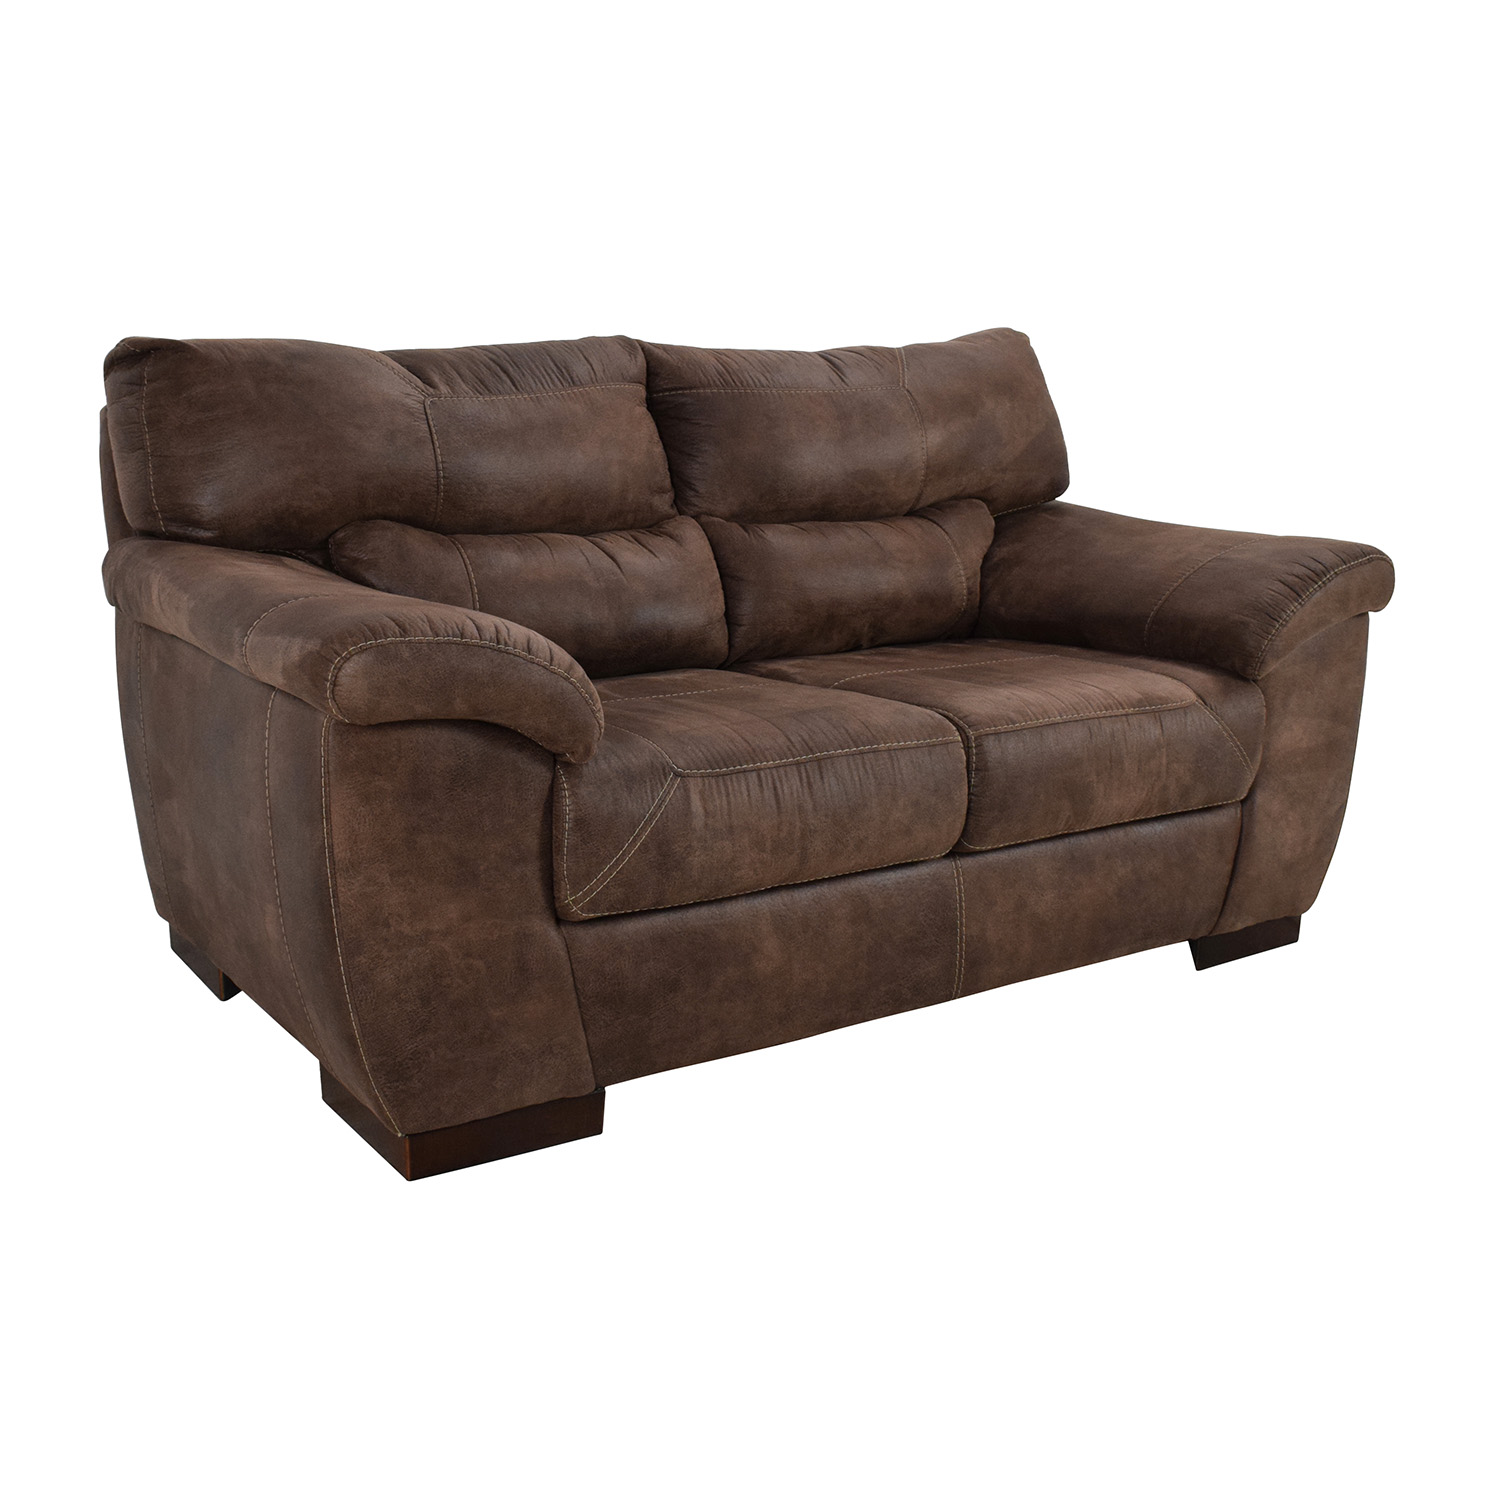 jennifer convertible sofas on sale best sofa back support 59 off convertibles